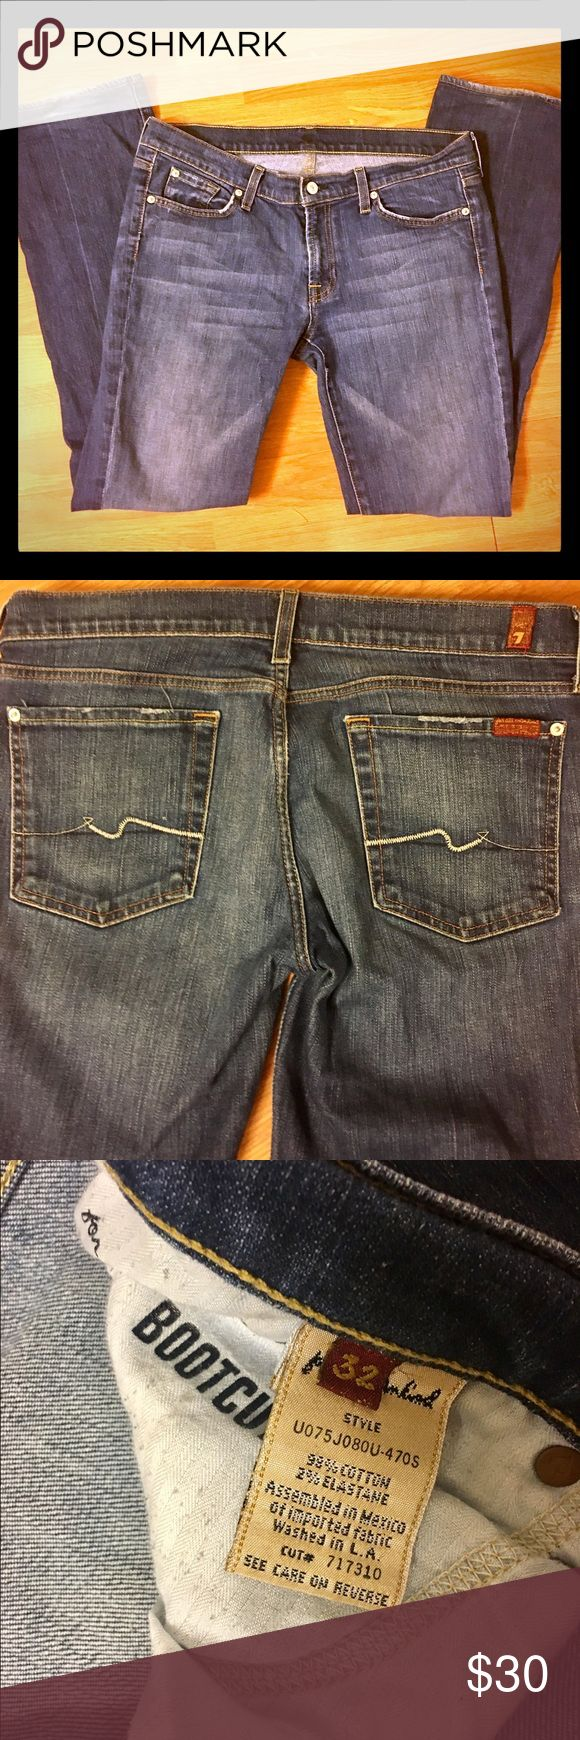 Seven for all Mankind bootcut jeans size 32 Seven for all Mankind bootcut jeans size 32. Good condition! 7 for all Mankind Jeans Boot Cut